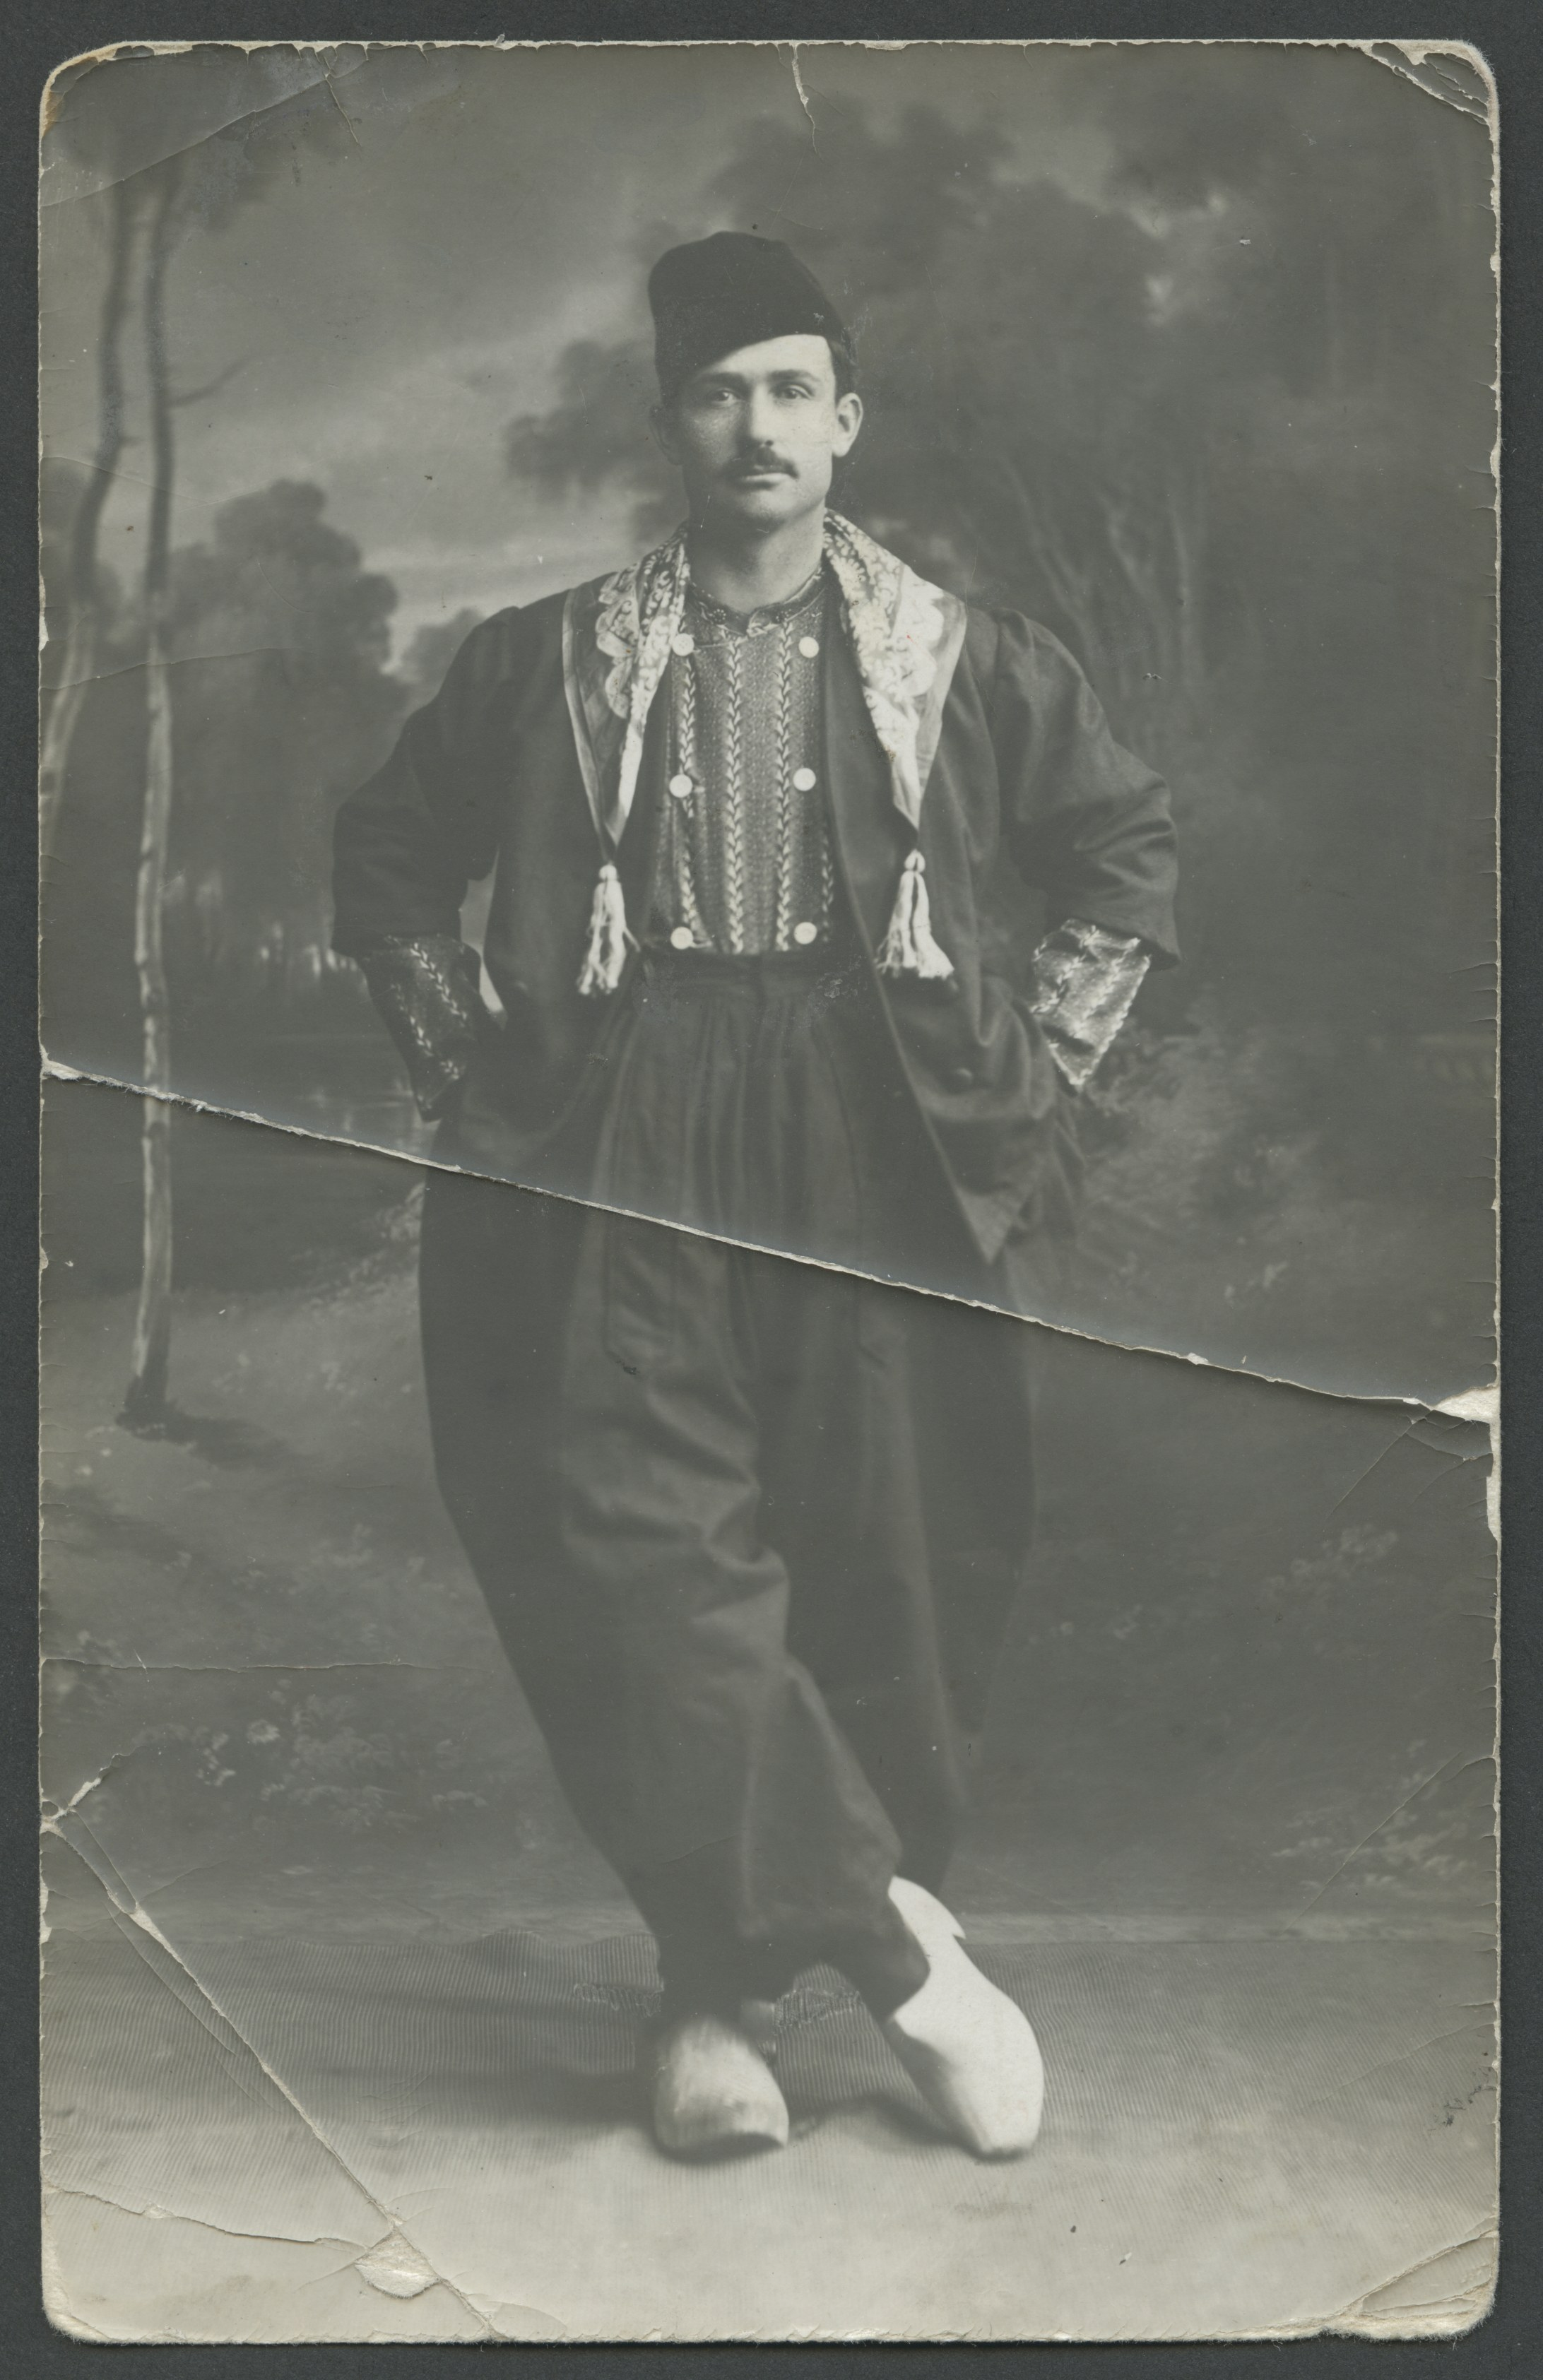 John H. Cottam in the Netherlands